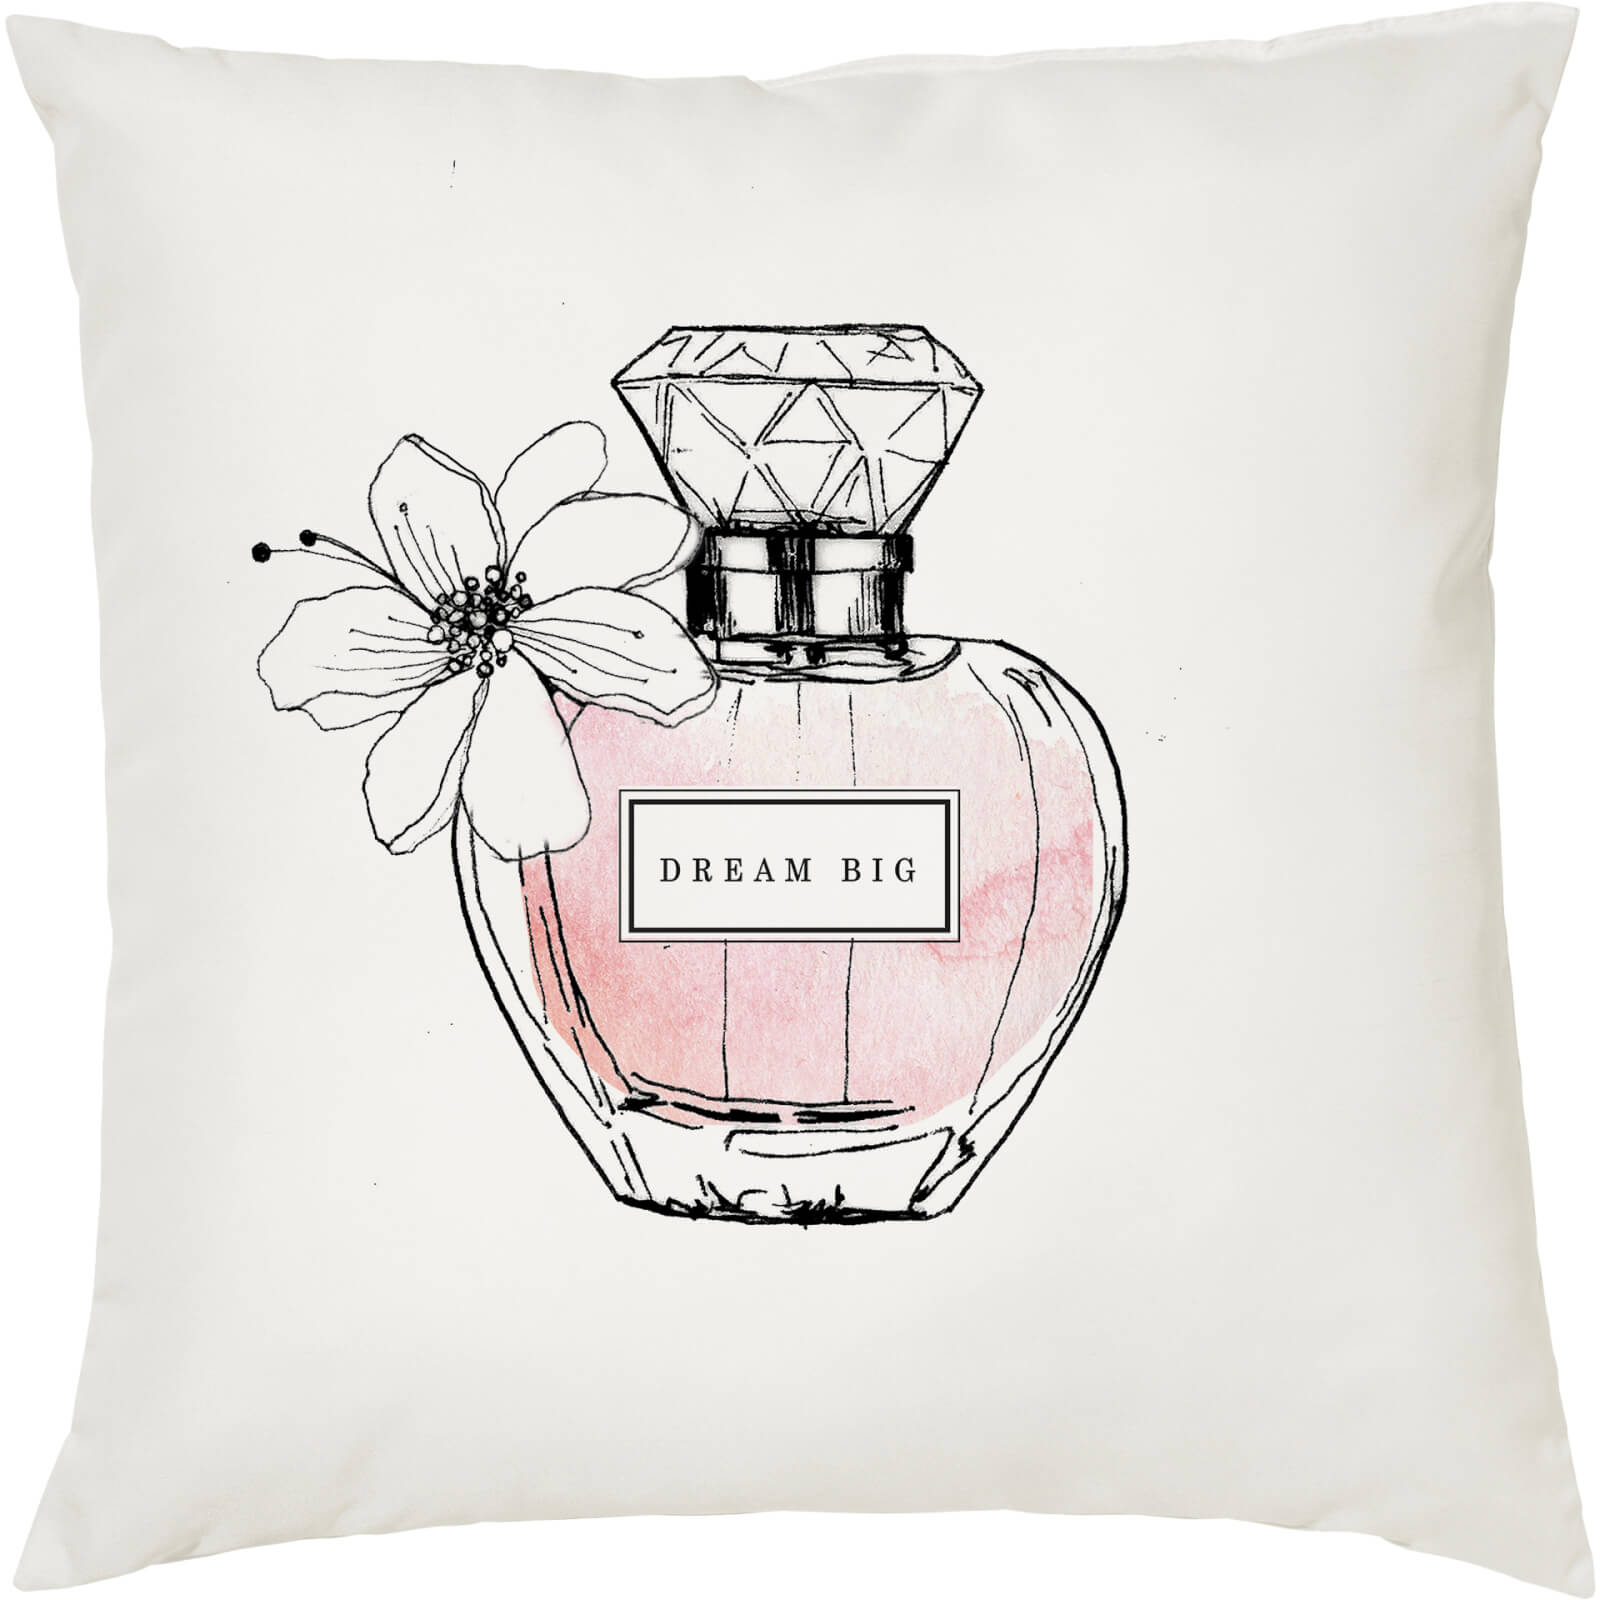 Dream Big Perfume Cushion - White (45 x 45cm)